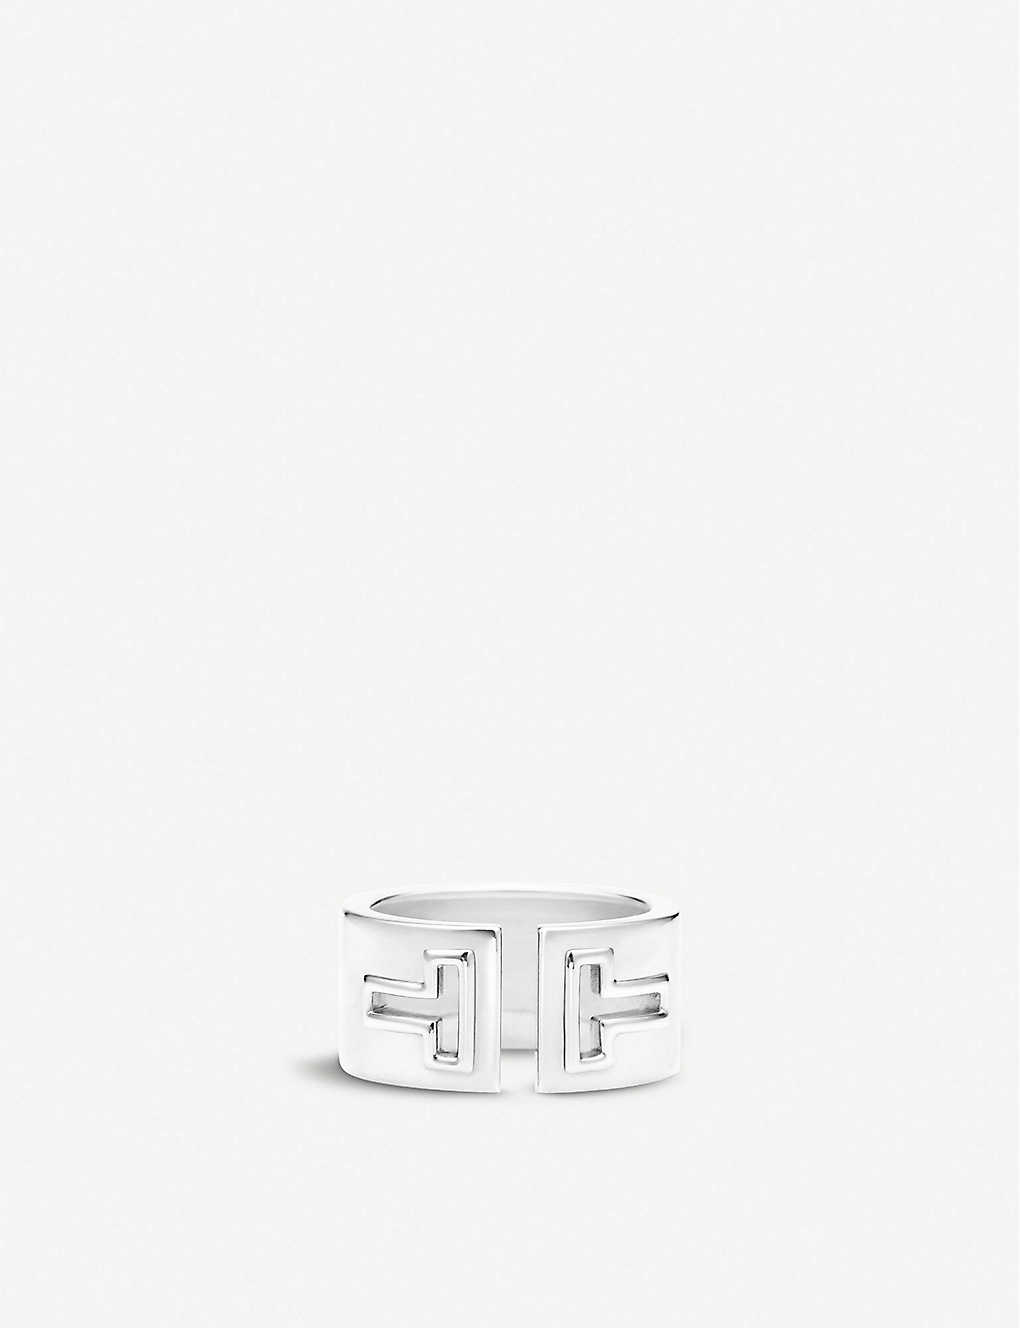 1eac8667a TIFFANY & CO - Tiffany T cutout ring in sterling silver | Selfridges.com